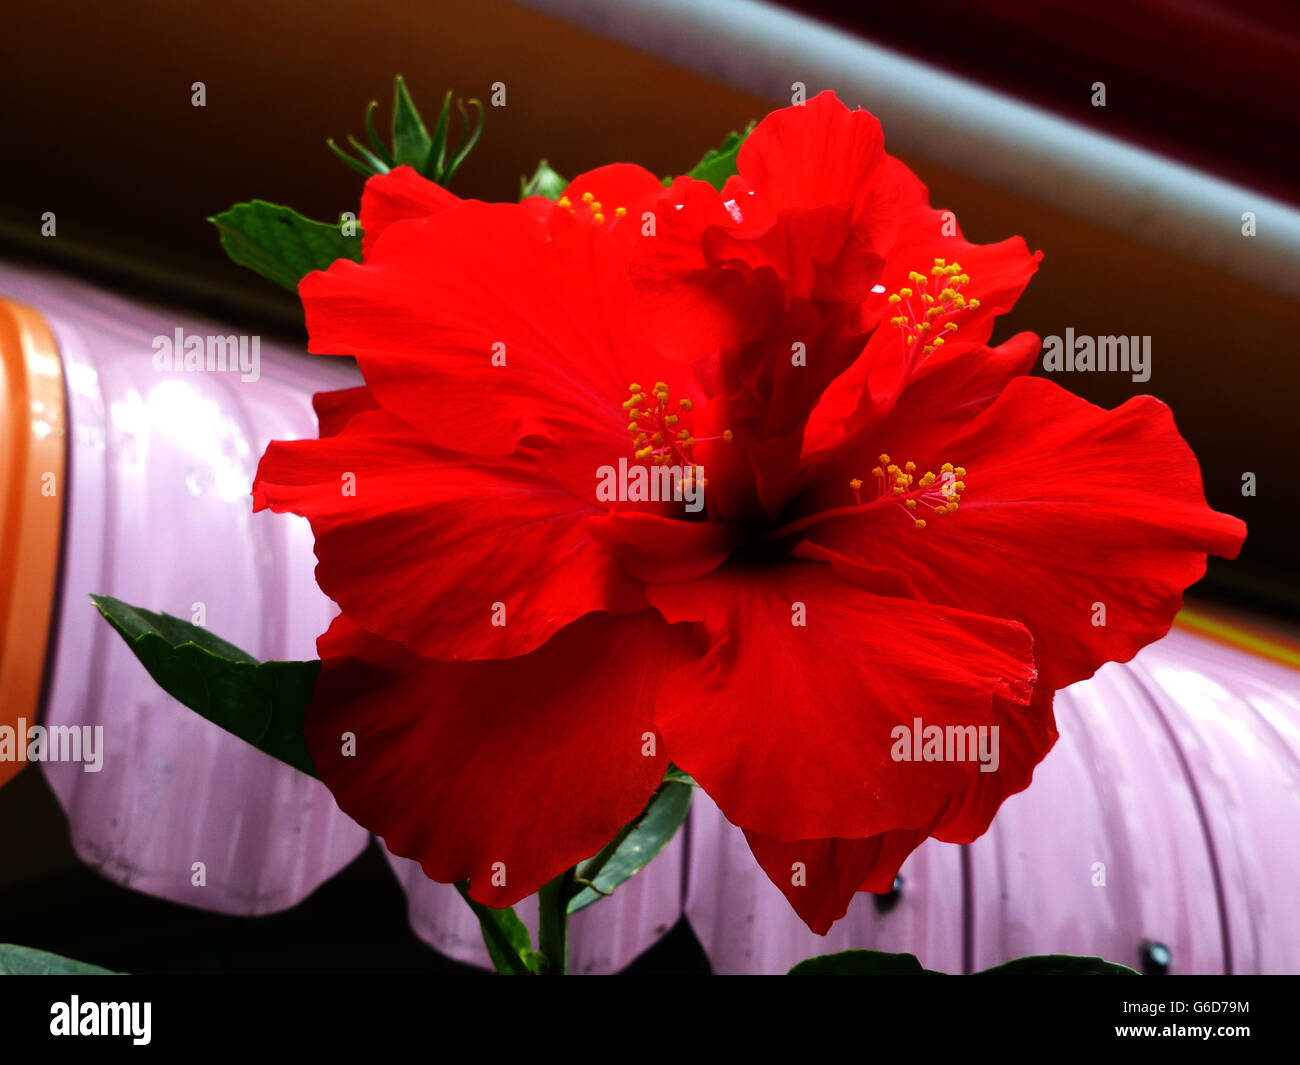 Hibiscus flower very popular in many varieties right across stock hibiscus flower very popular in many varieties right across jamaicaobably the most popular and treasured on the island izmirmasajfo Choice Image